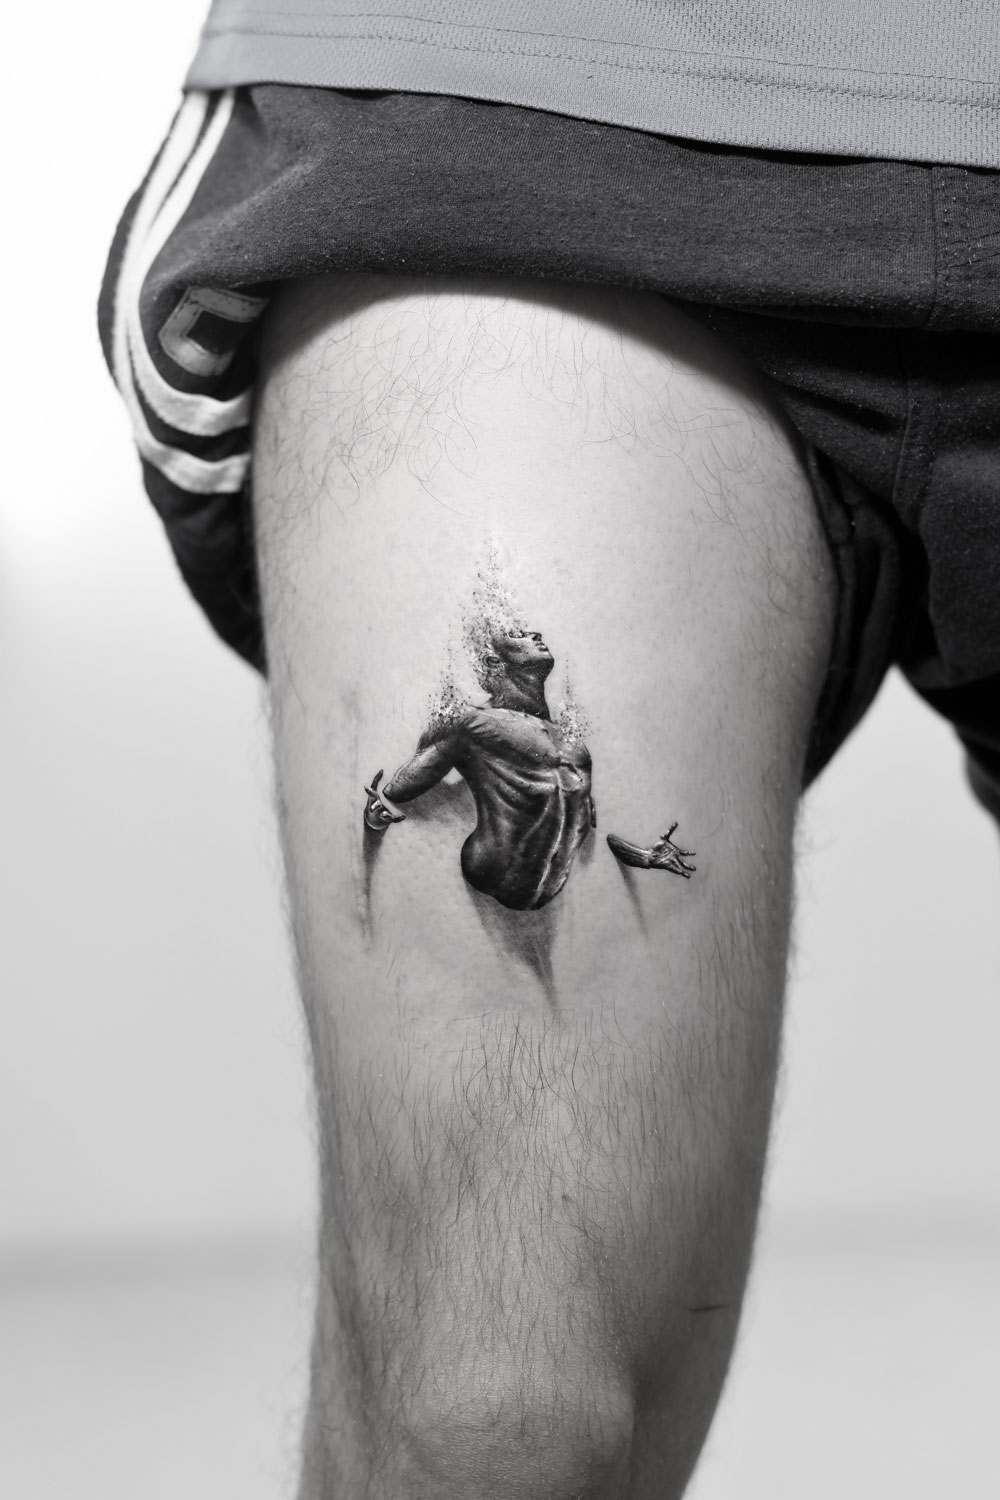 Destruction-Effect-Darkness-Free-by-Alessandro-Capozzi-in-Aureo-Roma-Tattoo-&-Gallery.jpg